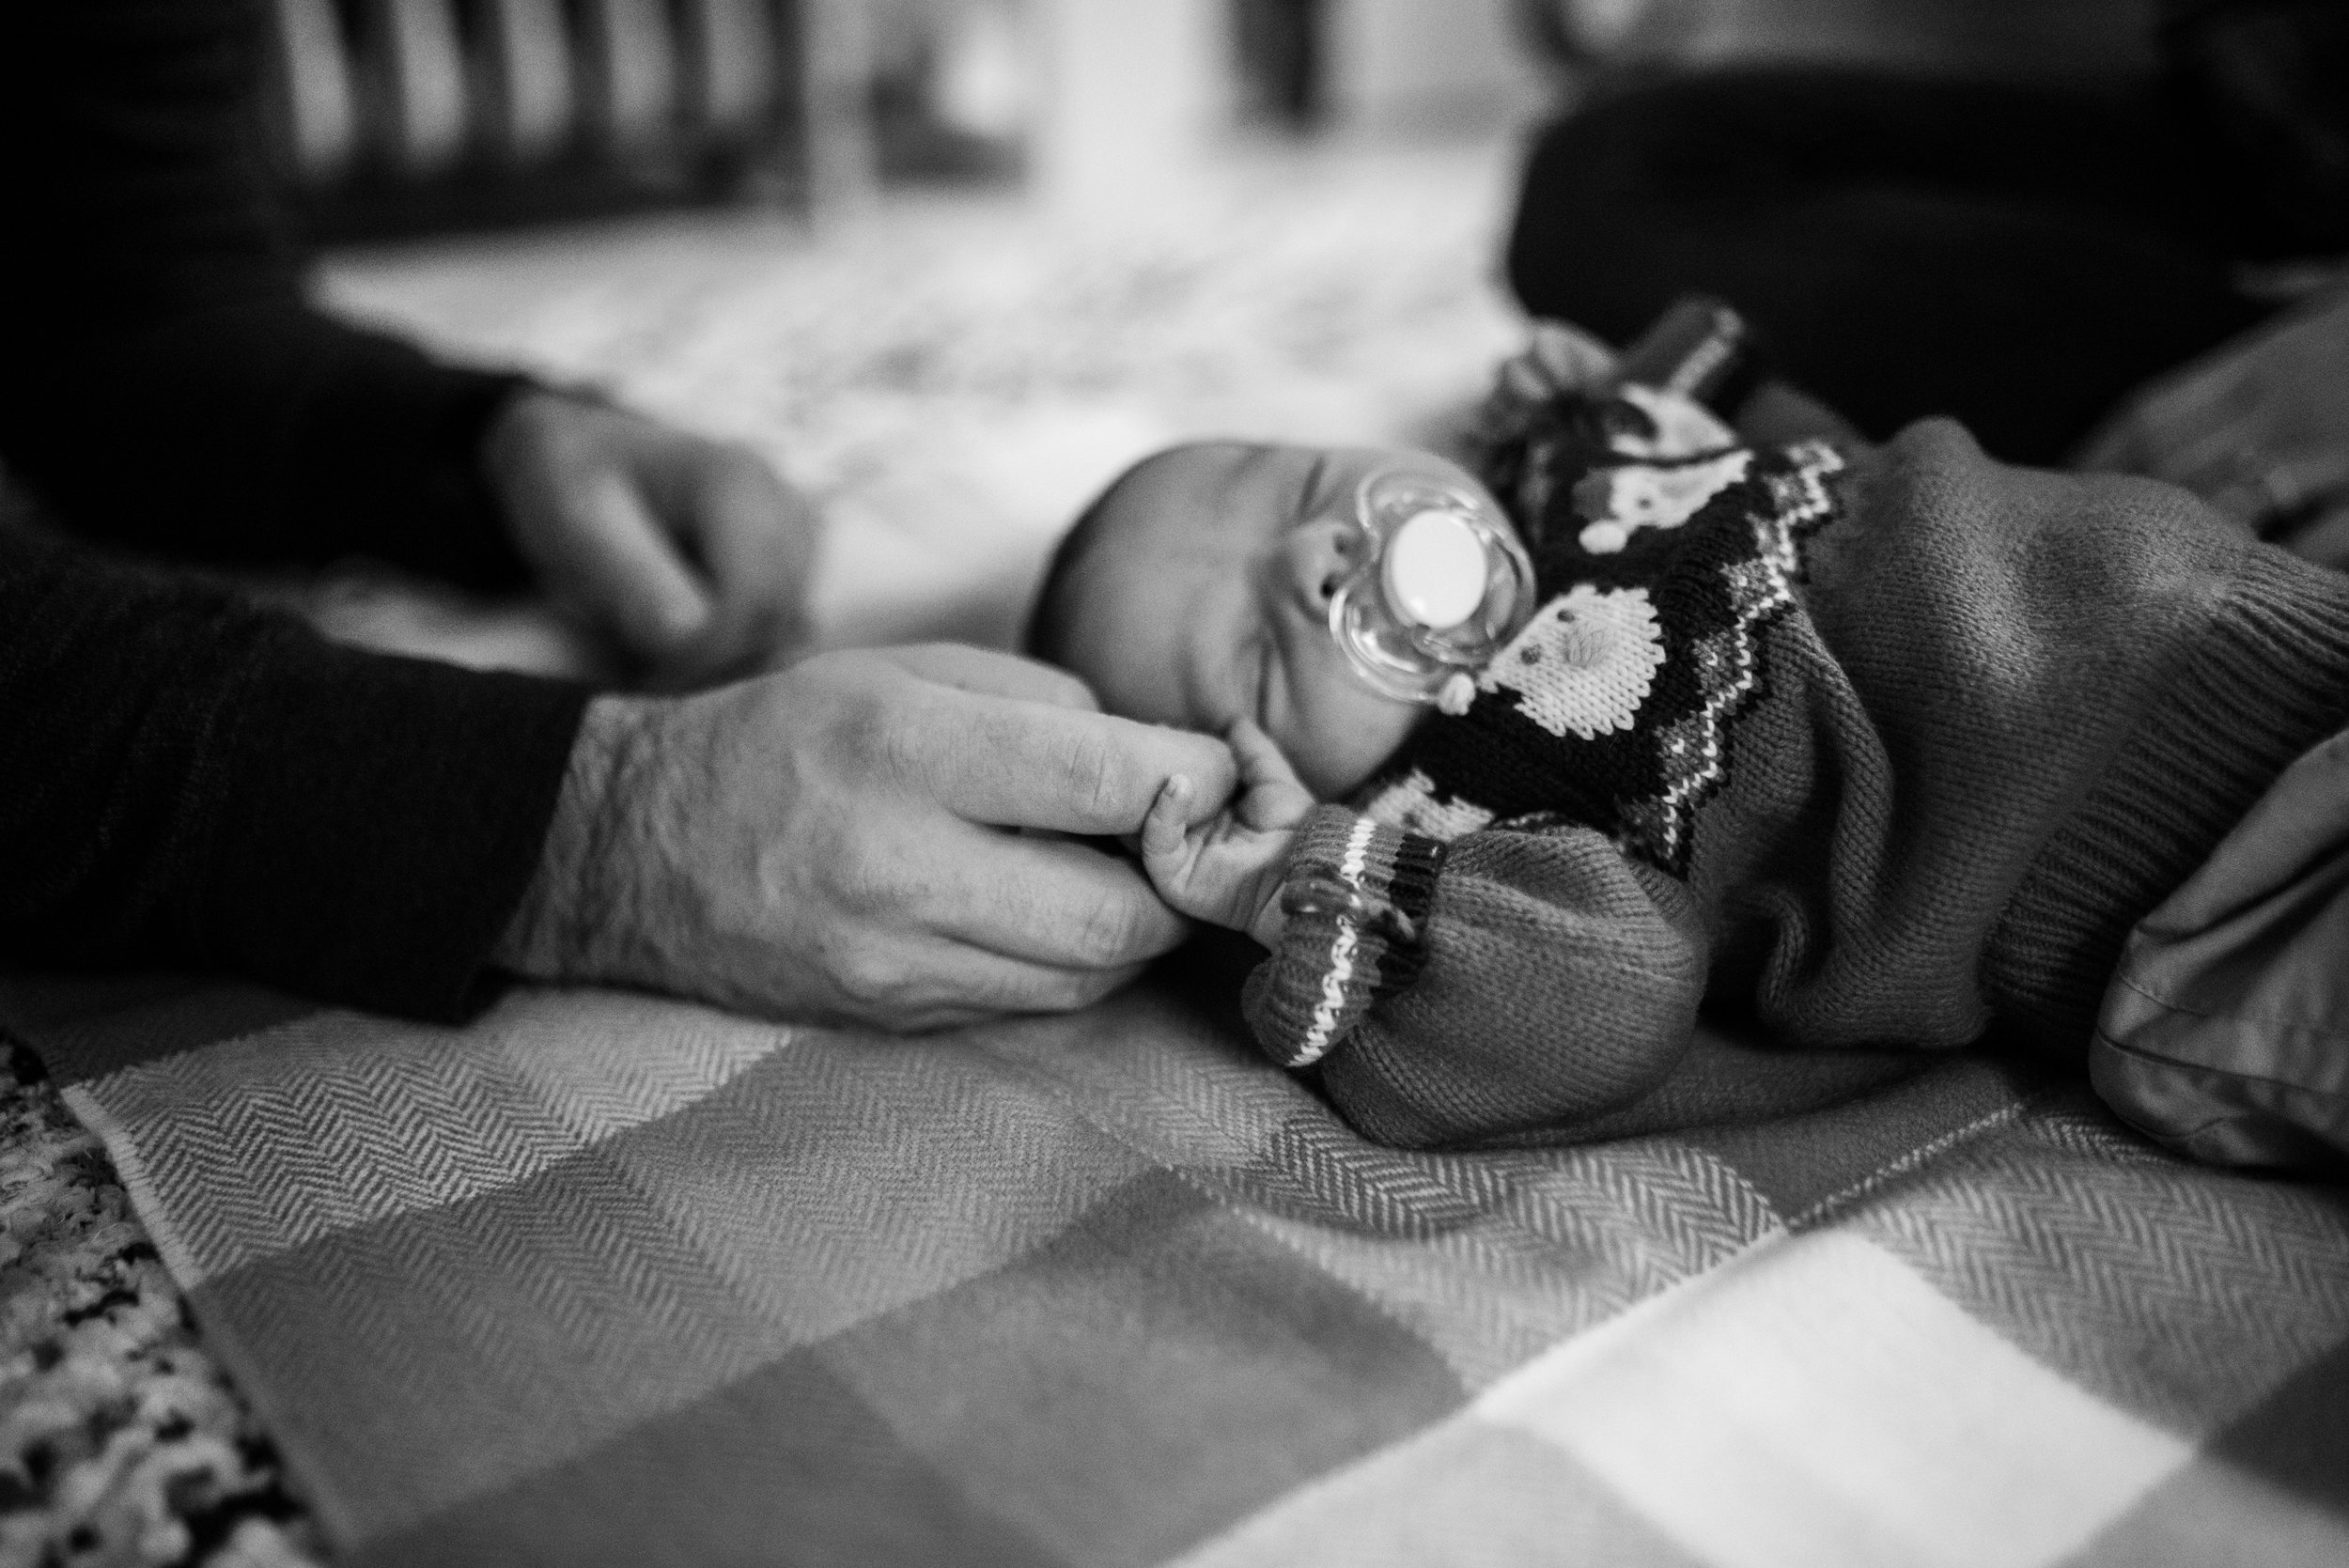 Newborn baby laying on the floor with pacifier in his mouth, holding dads hand